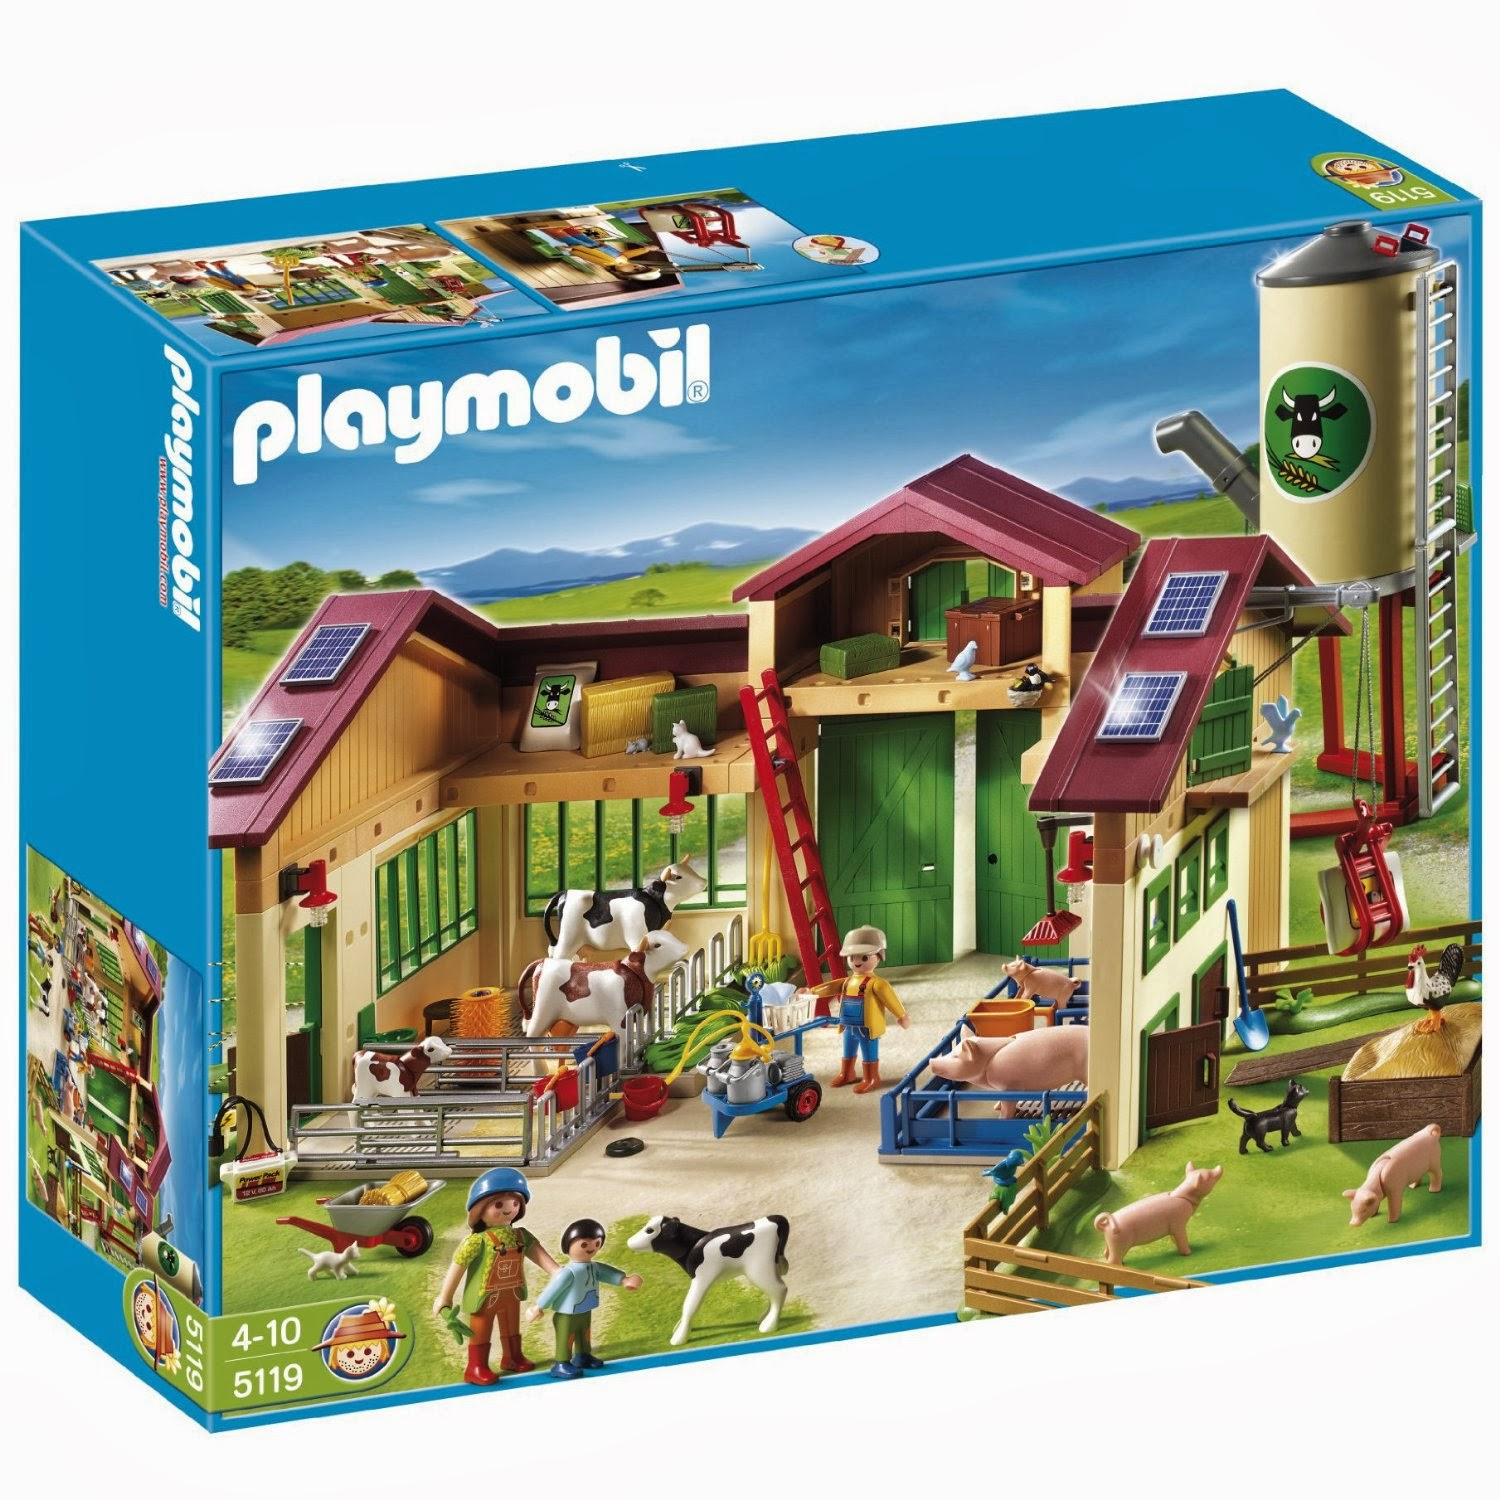 playmobil playmobil 5001 5300. Black Bedroom Furniture Sets. Home Design Ideas